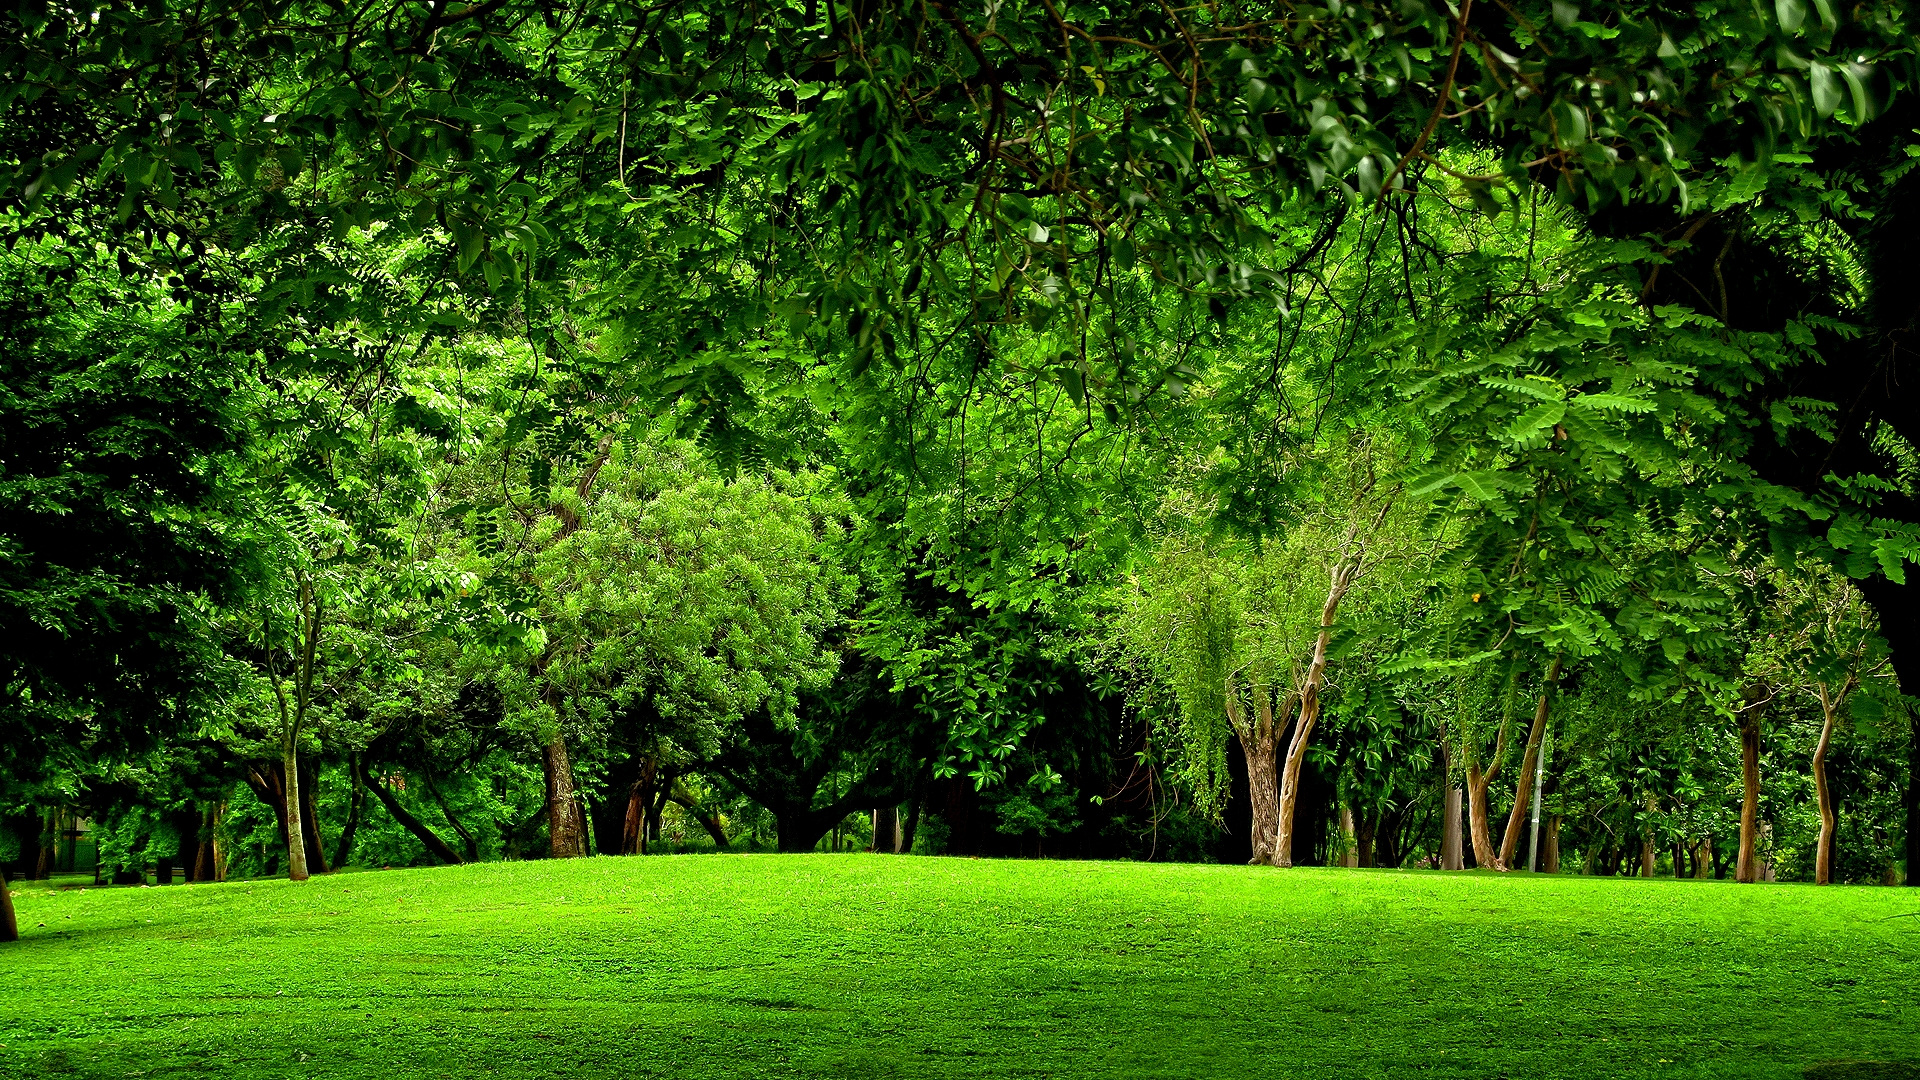 hd wallpapers green forest hd wallpapers green forest hd wallpapers 1920x1080